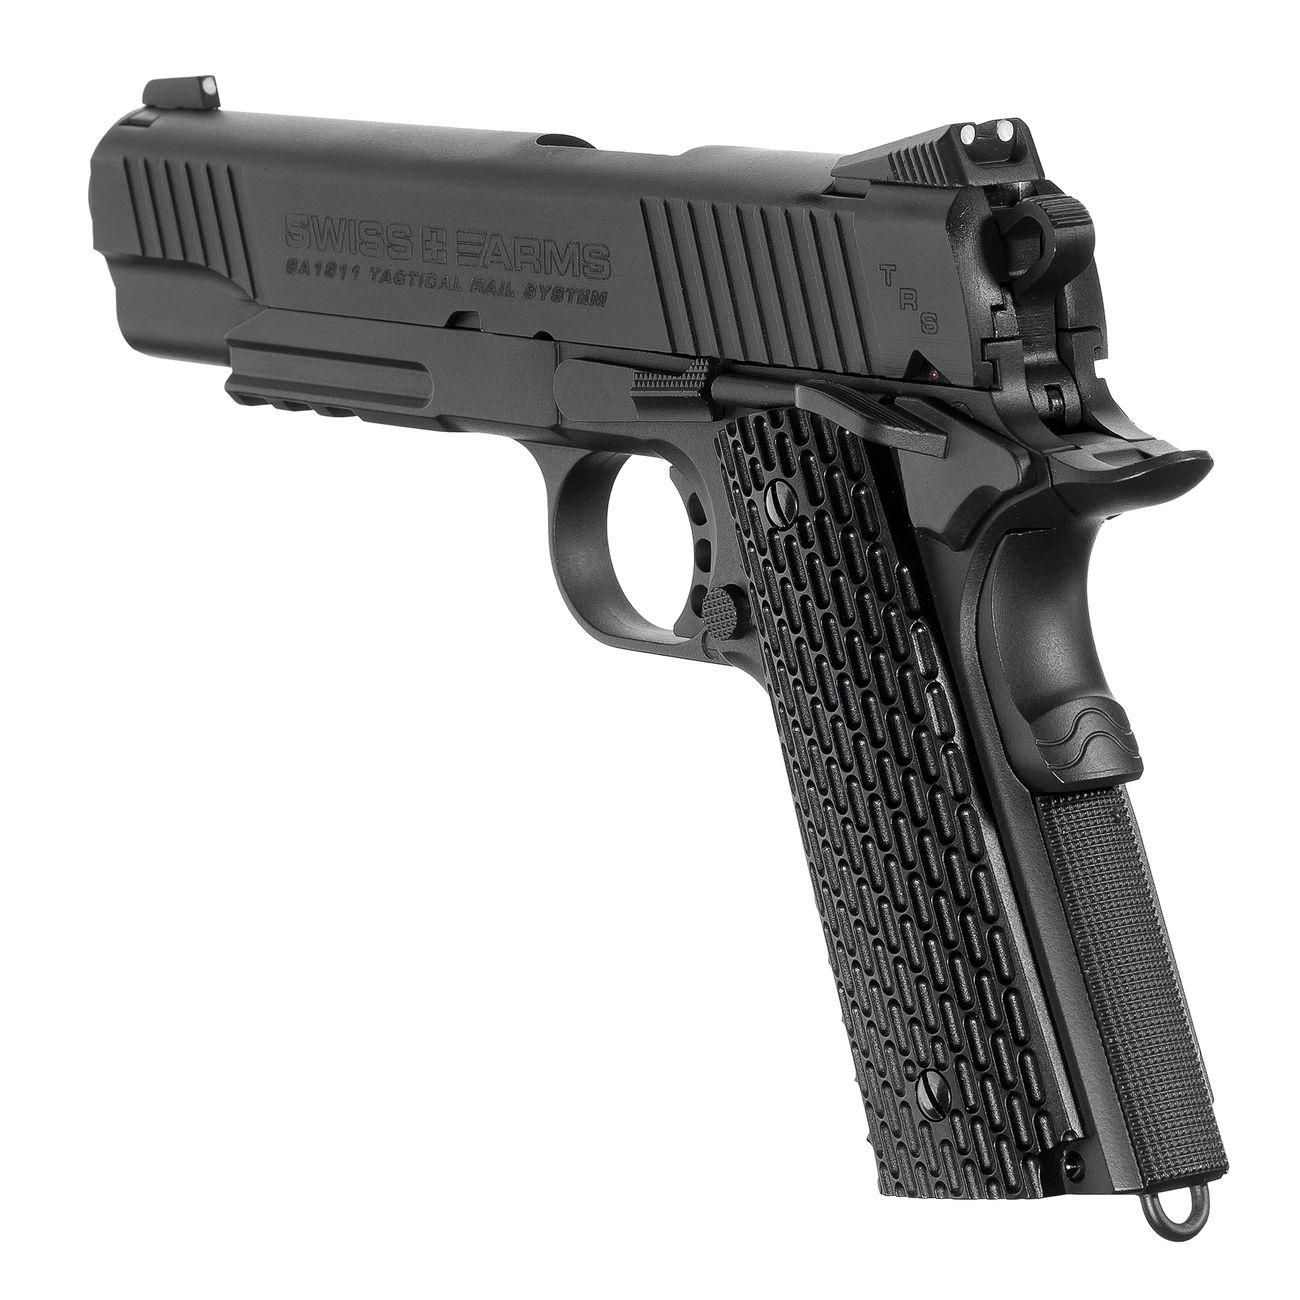 Swiss Arms SA 1911 TRS CO2 Luftpistole Kal. 4,5 mm BB schwarz Vollmetall 3